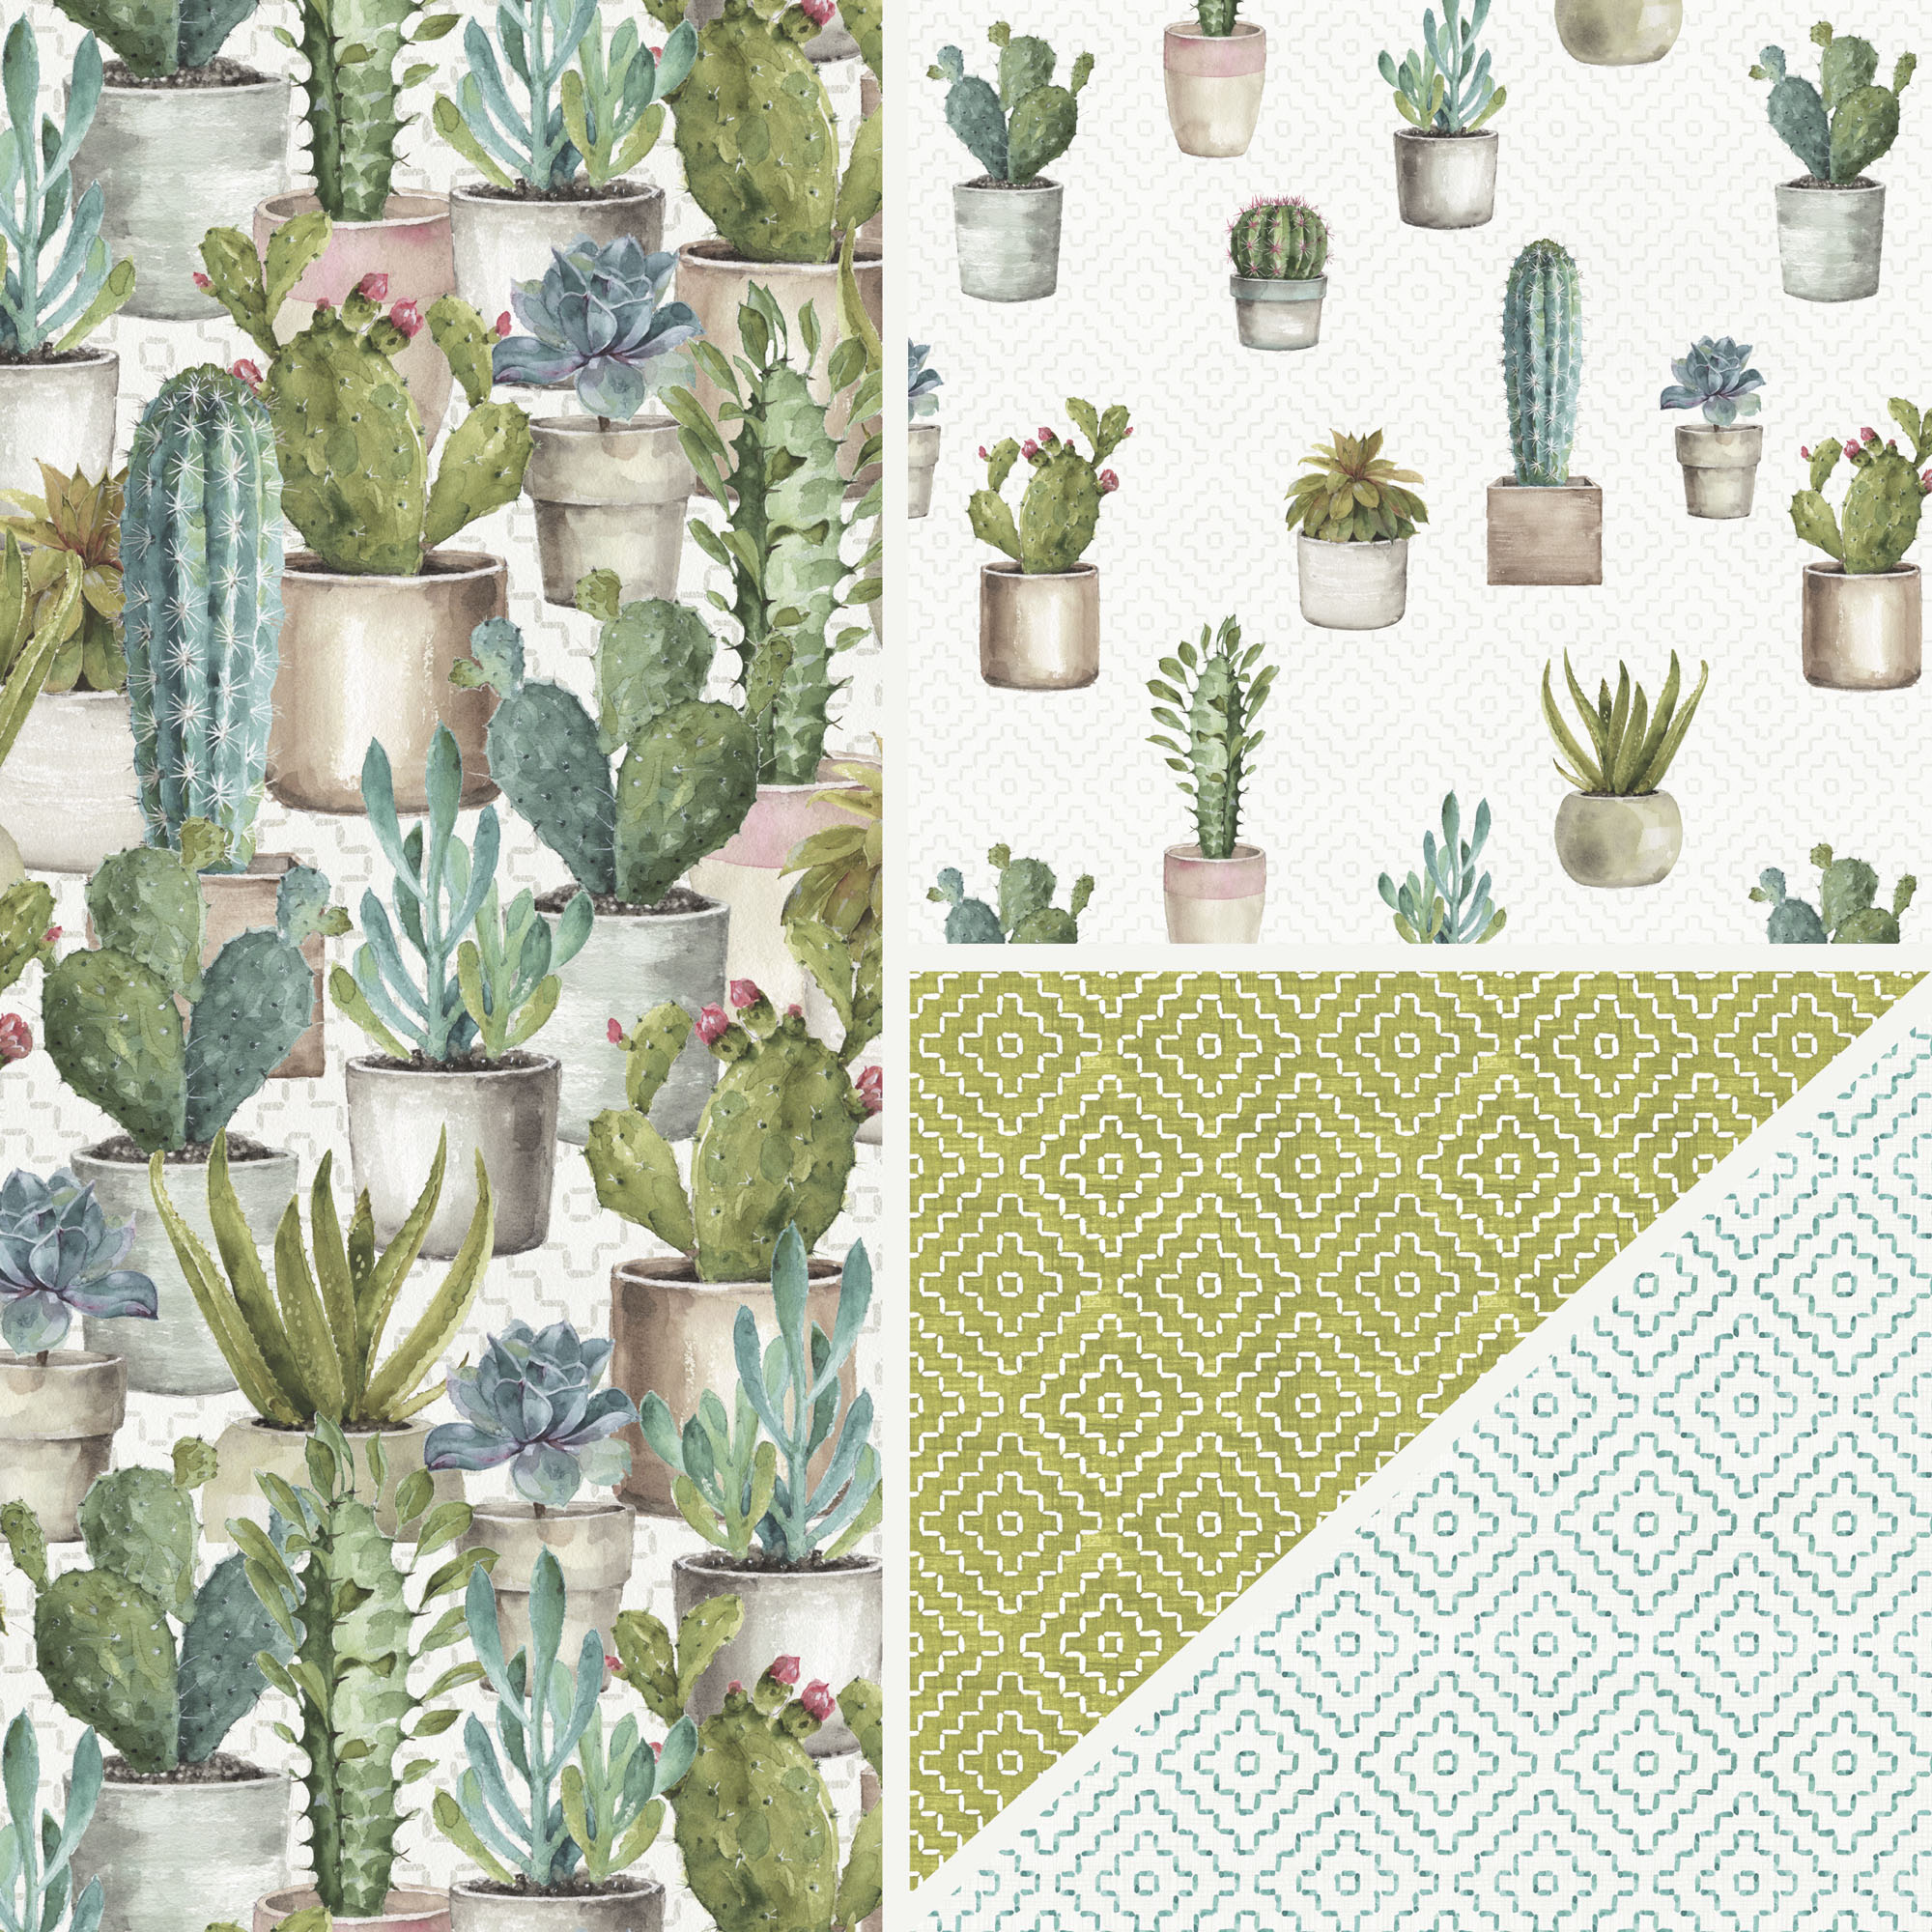 David Textiles Cotton Precut Fabric Cactus Garden Collection By Lisa Audit 1 Yd X 44 Inches